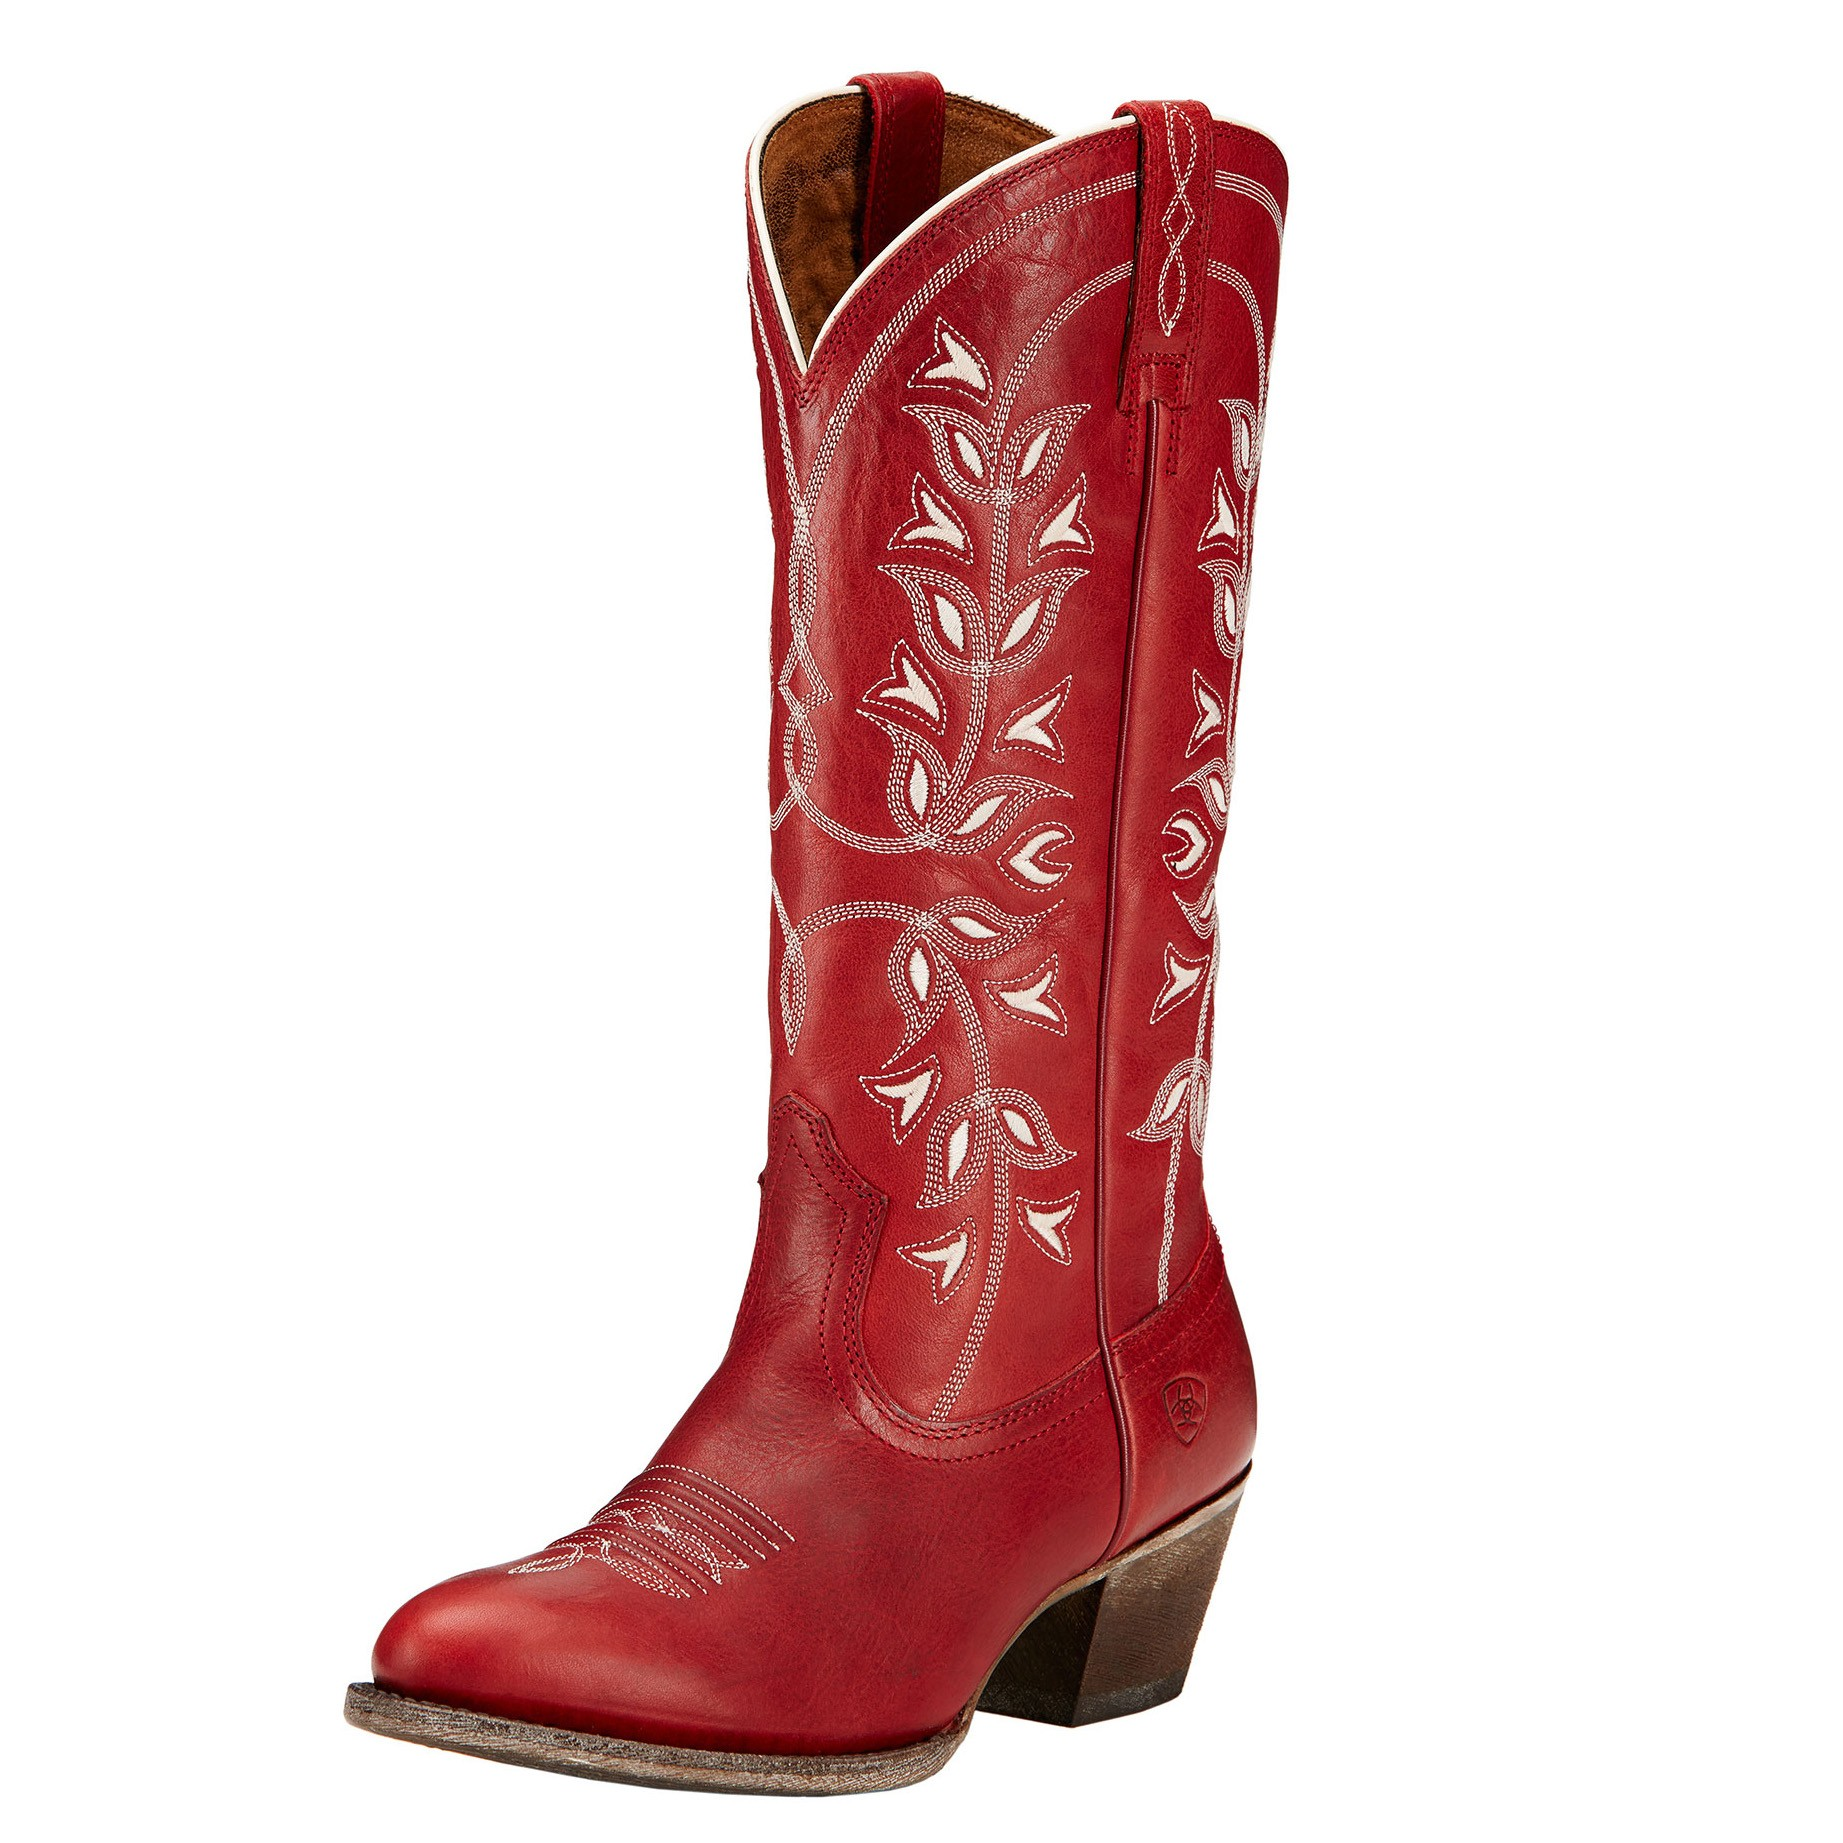 Womens Red Cowboy Boots JHf0h68c